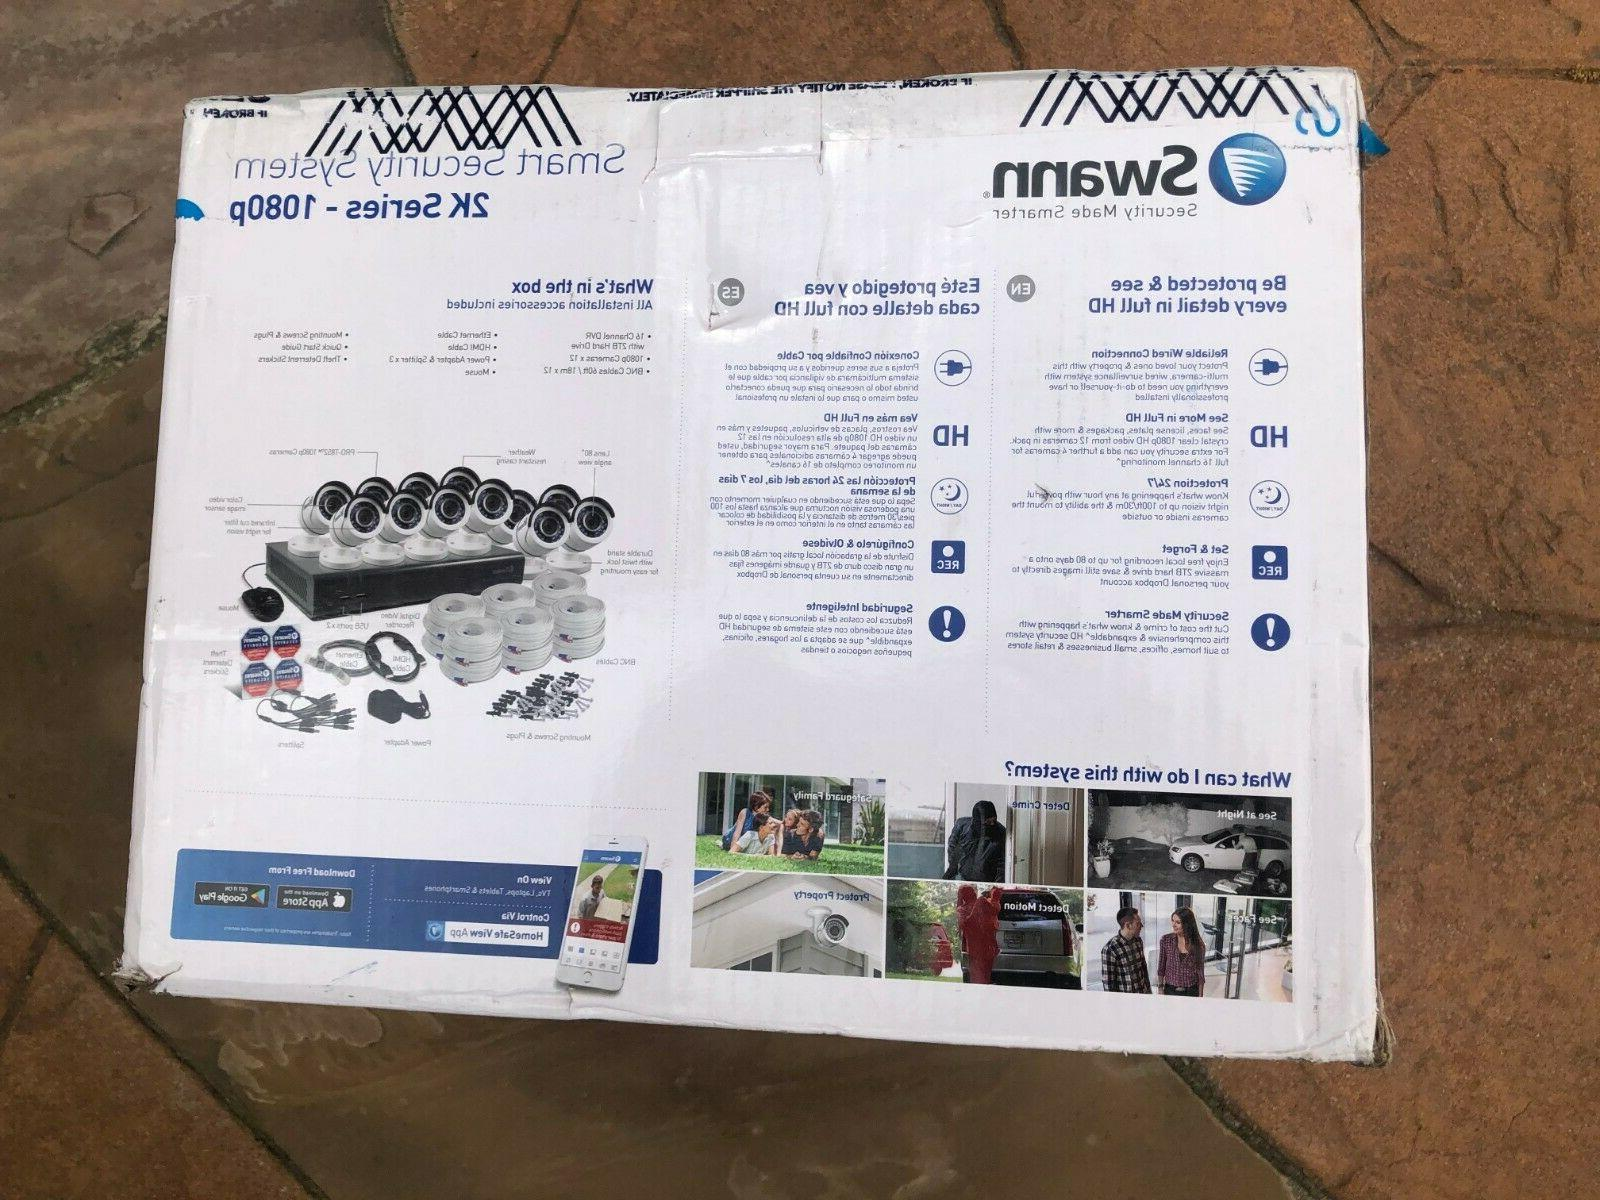 swdvk 1645912 us security system